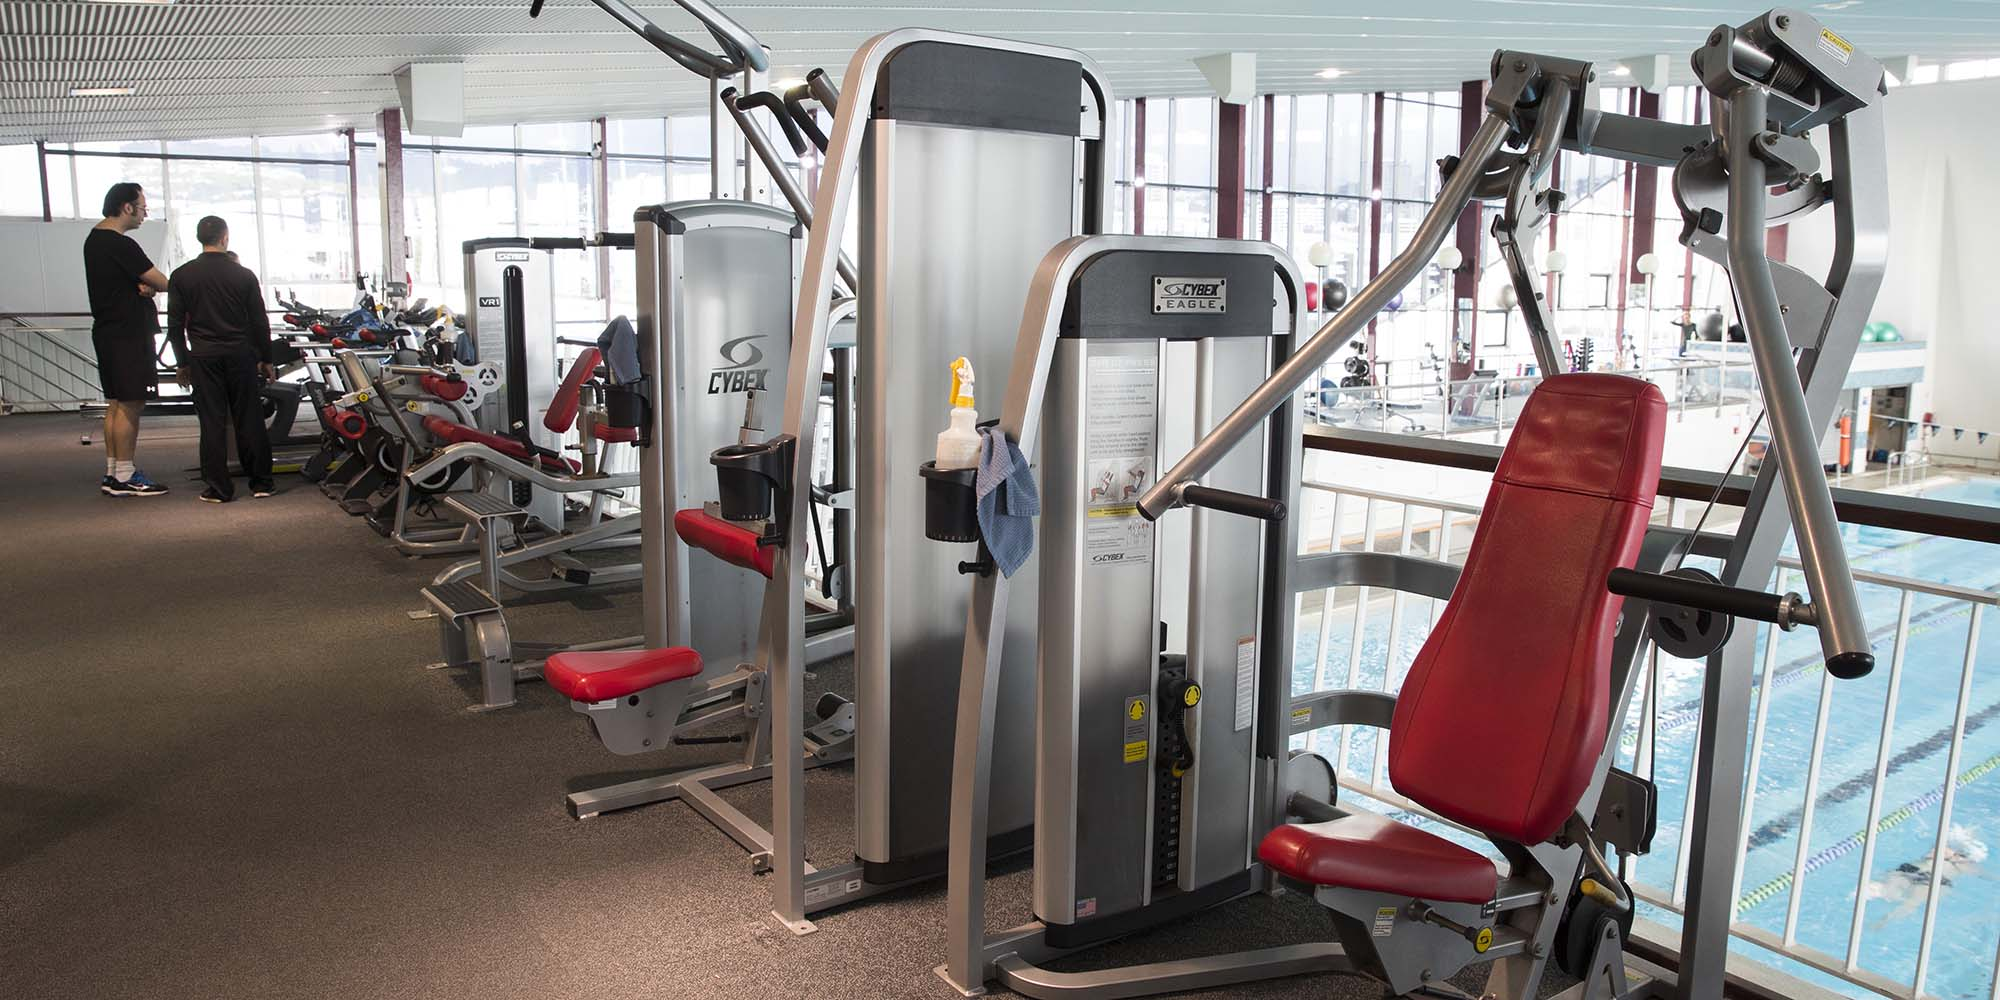 Gym equipment at Freyberg Pool & Fitness Centre.